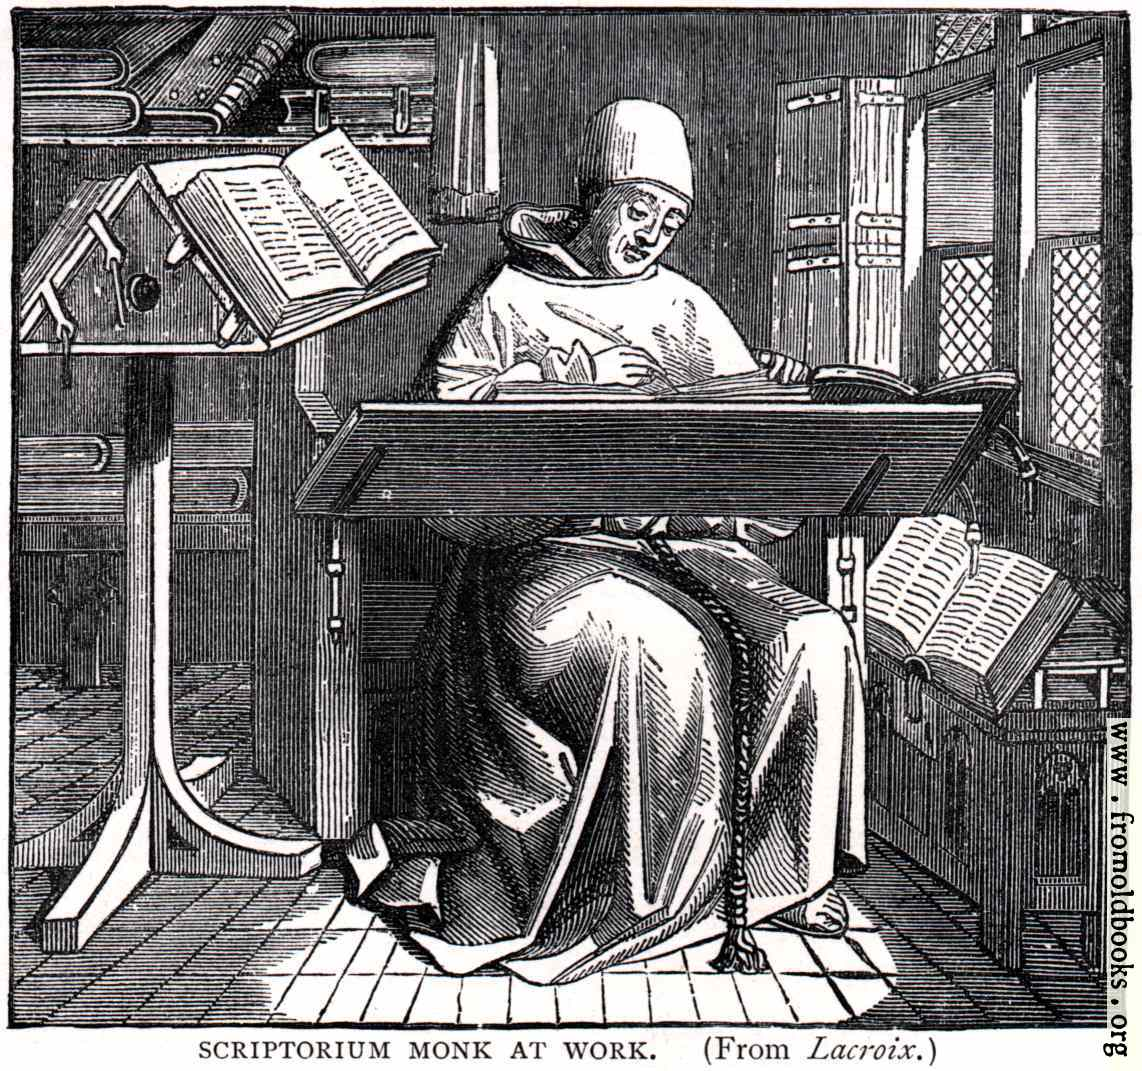 http://www.fromoldbooks.org/Blades-Pentateuch/pages/scriptorium-monk-at-work/scriptorium-monk-at-work-1142x1071.jpg